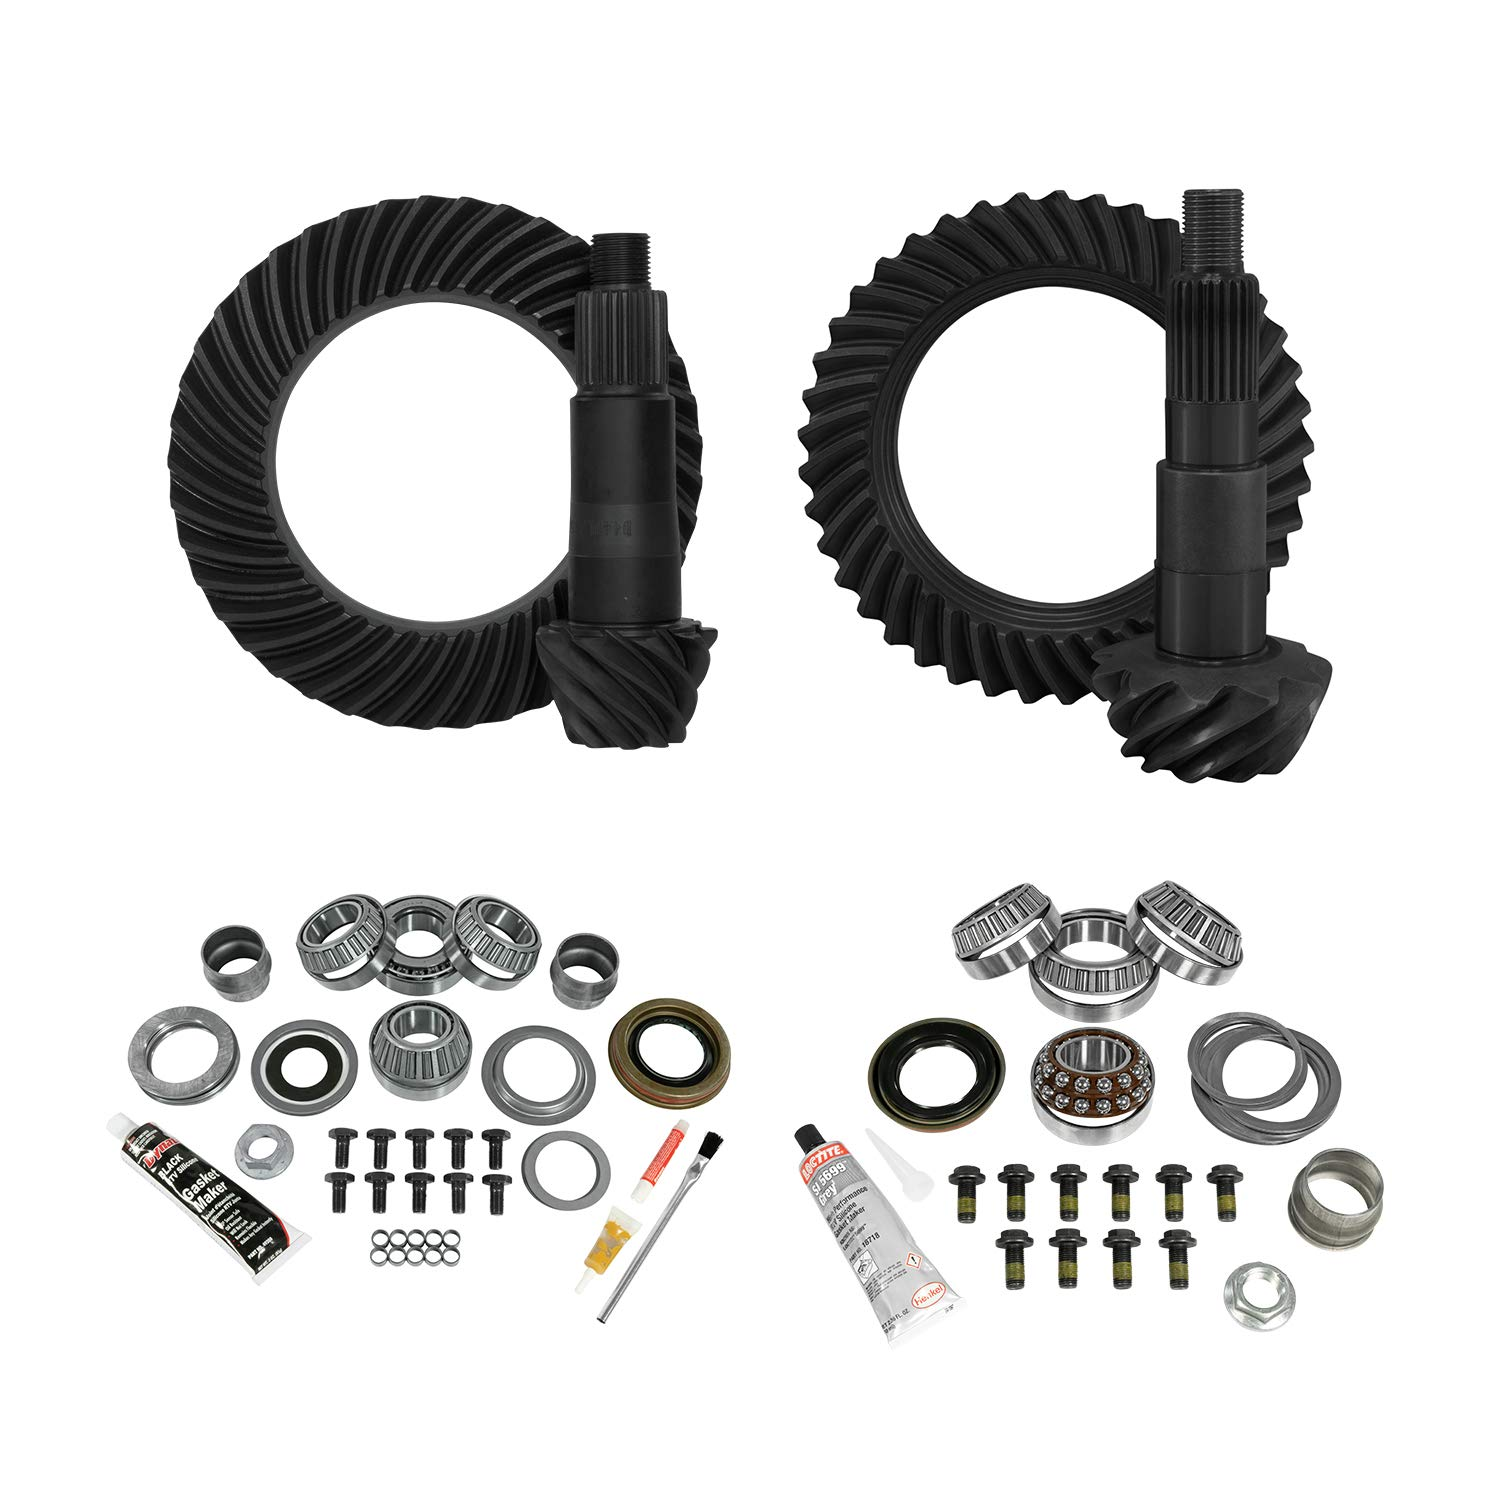 Yukon Gear /& Axle Install Kit for Standard Rotation Dana 60 GM 14T, 5.38 Ratio YGK040